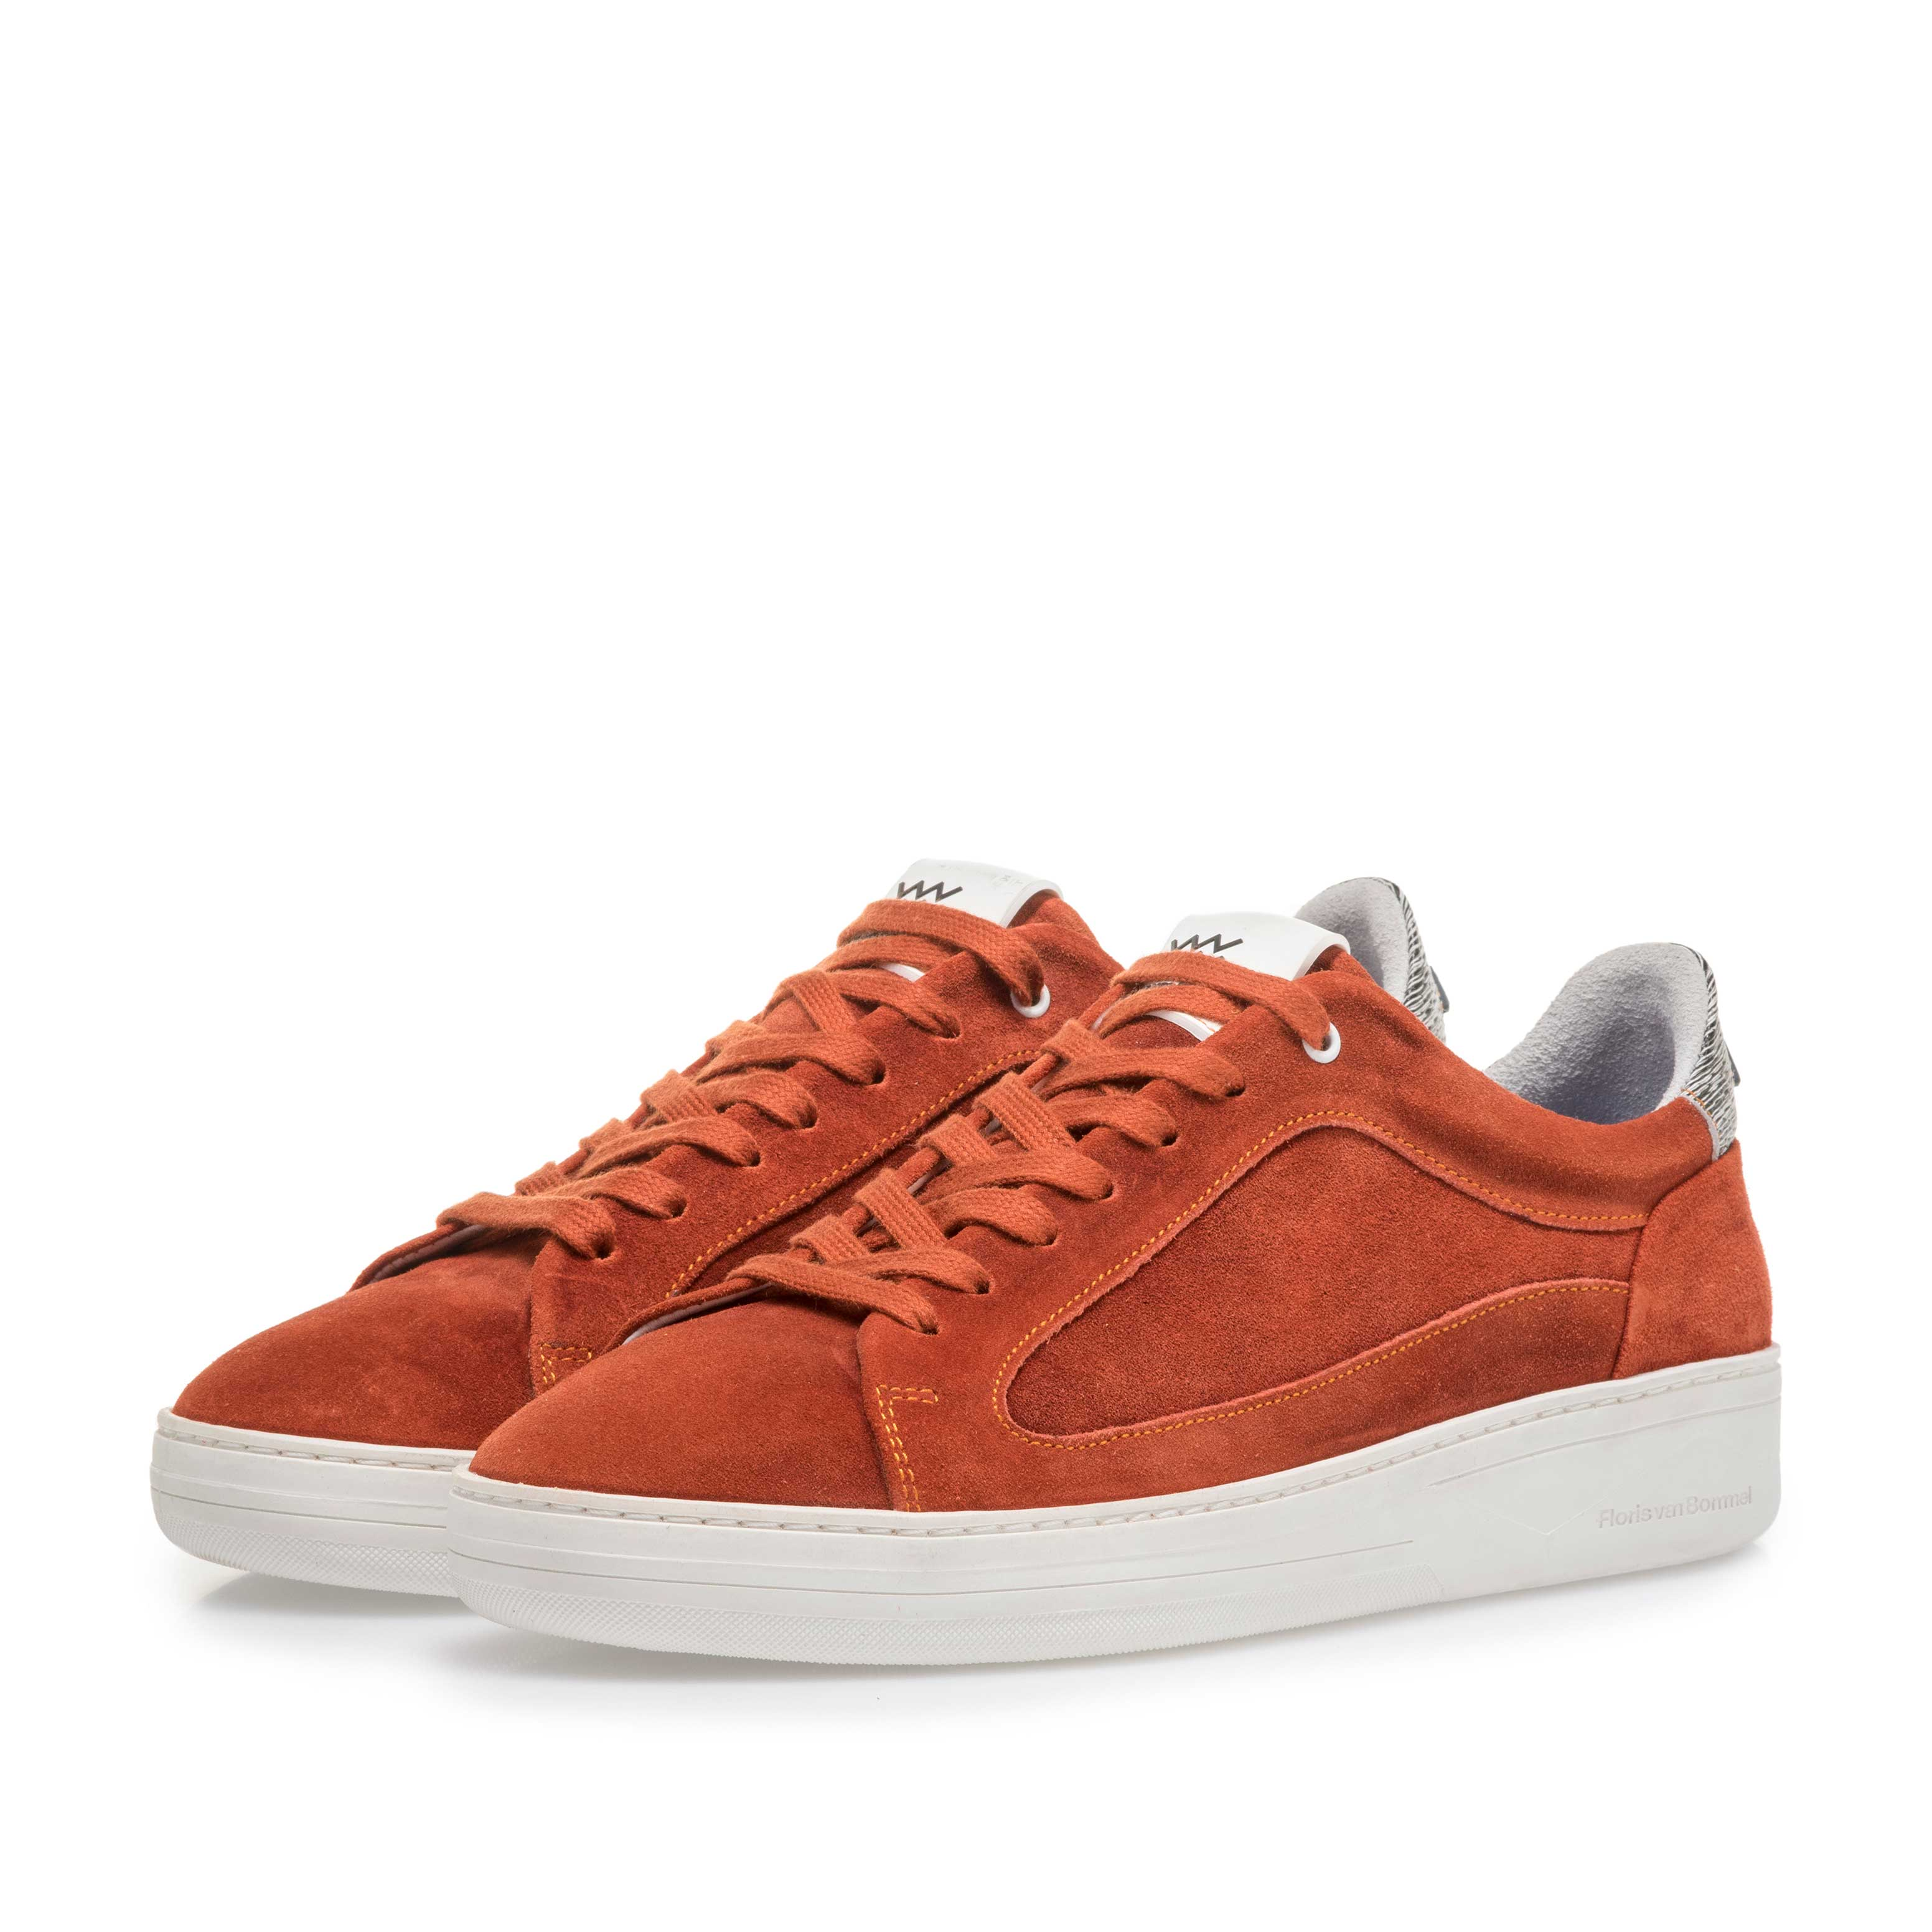 13265/03 - Orange and red suede leather sneaker